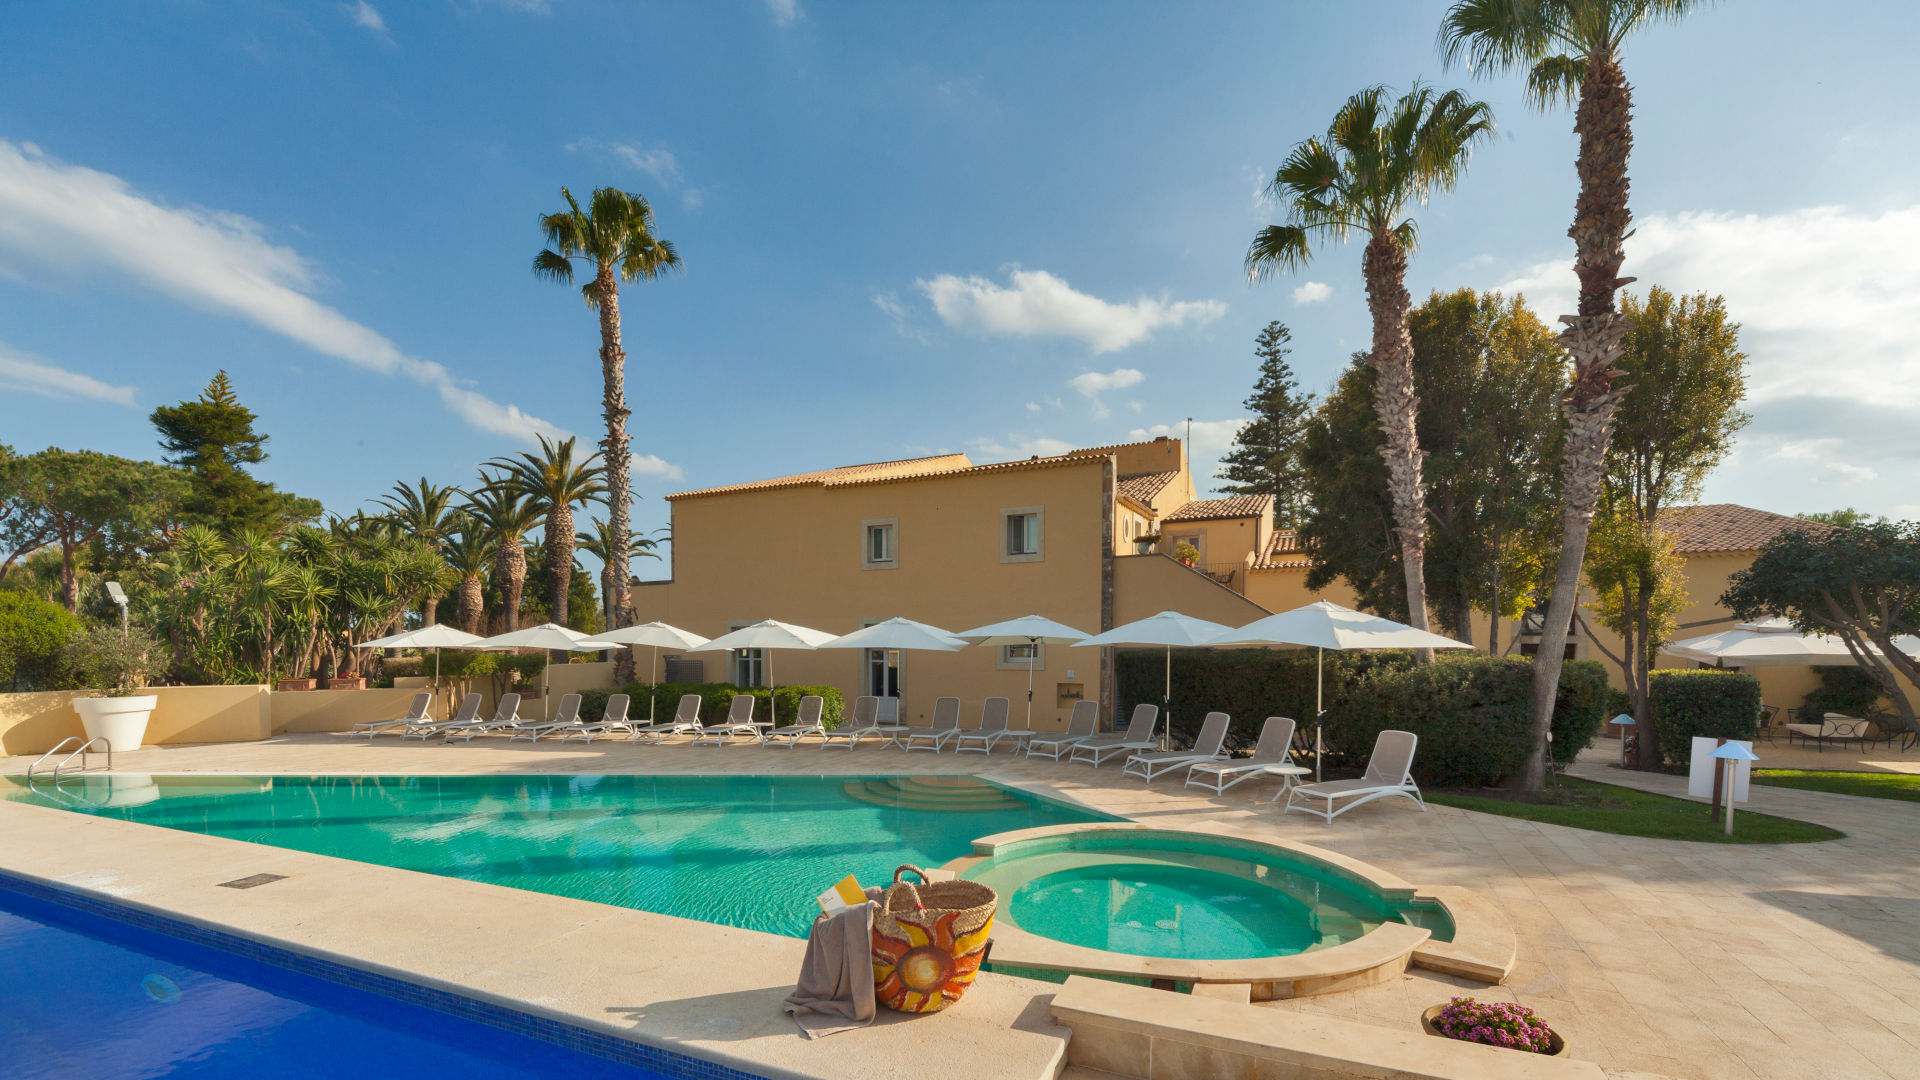 Caiammari Hotel with swimming pool, restaurant and SPA in Syracuse